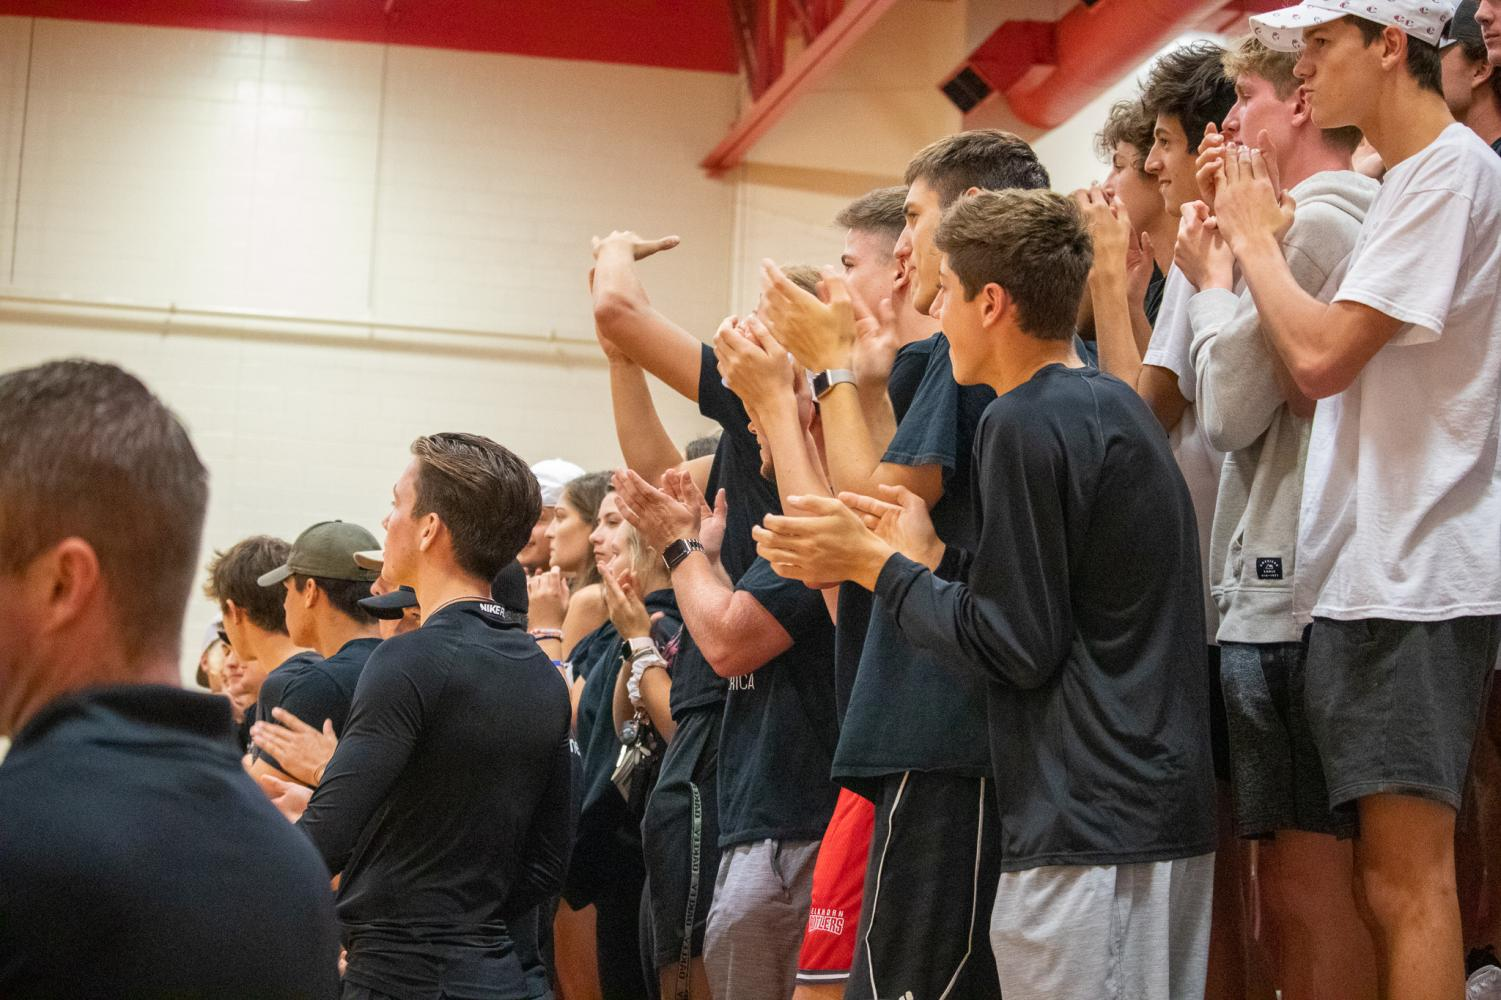 The+student+section+cheering+on+the+girls+showing+the+blackout+theme.